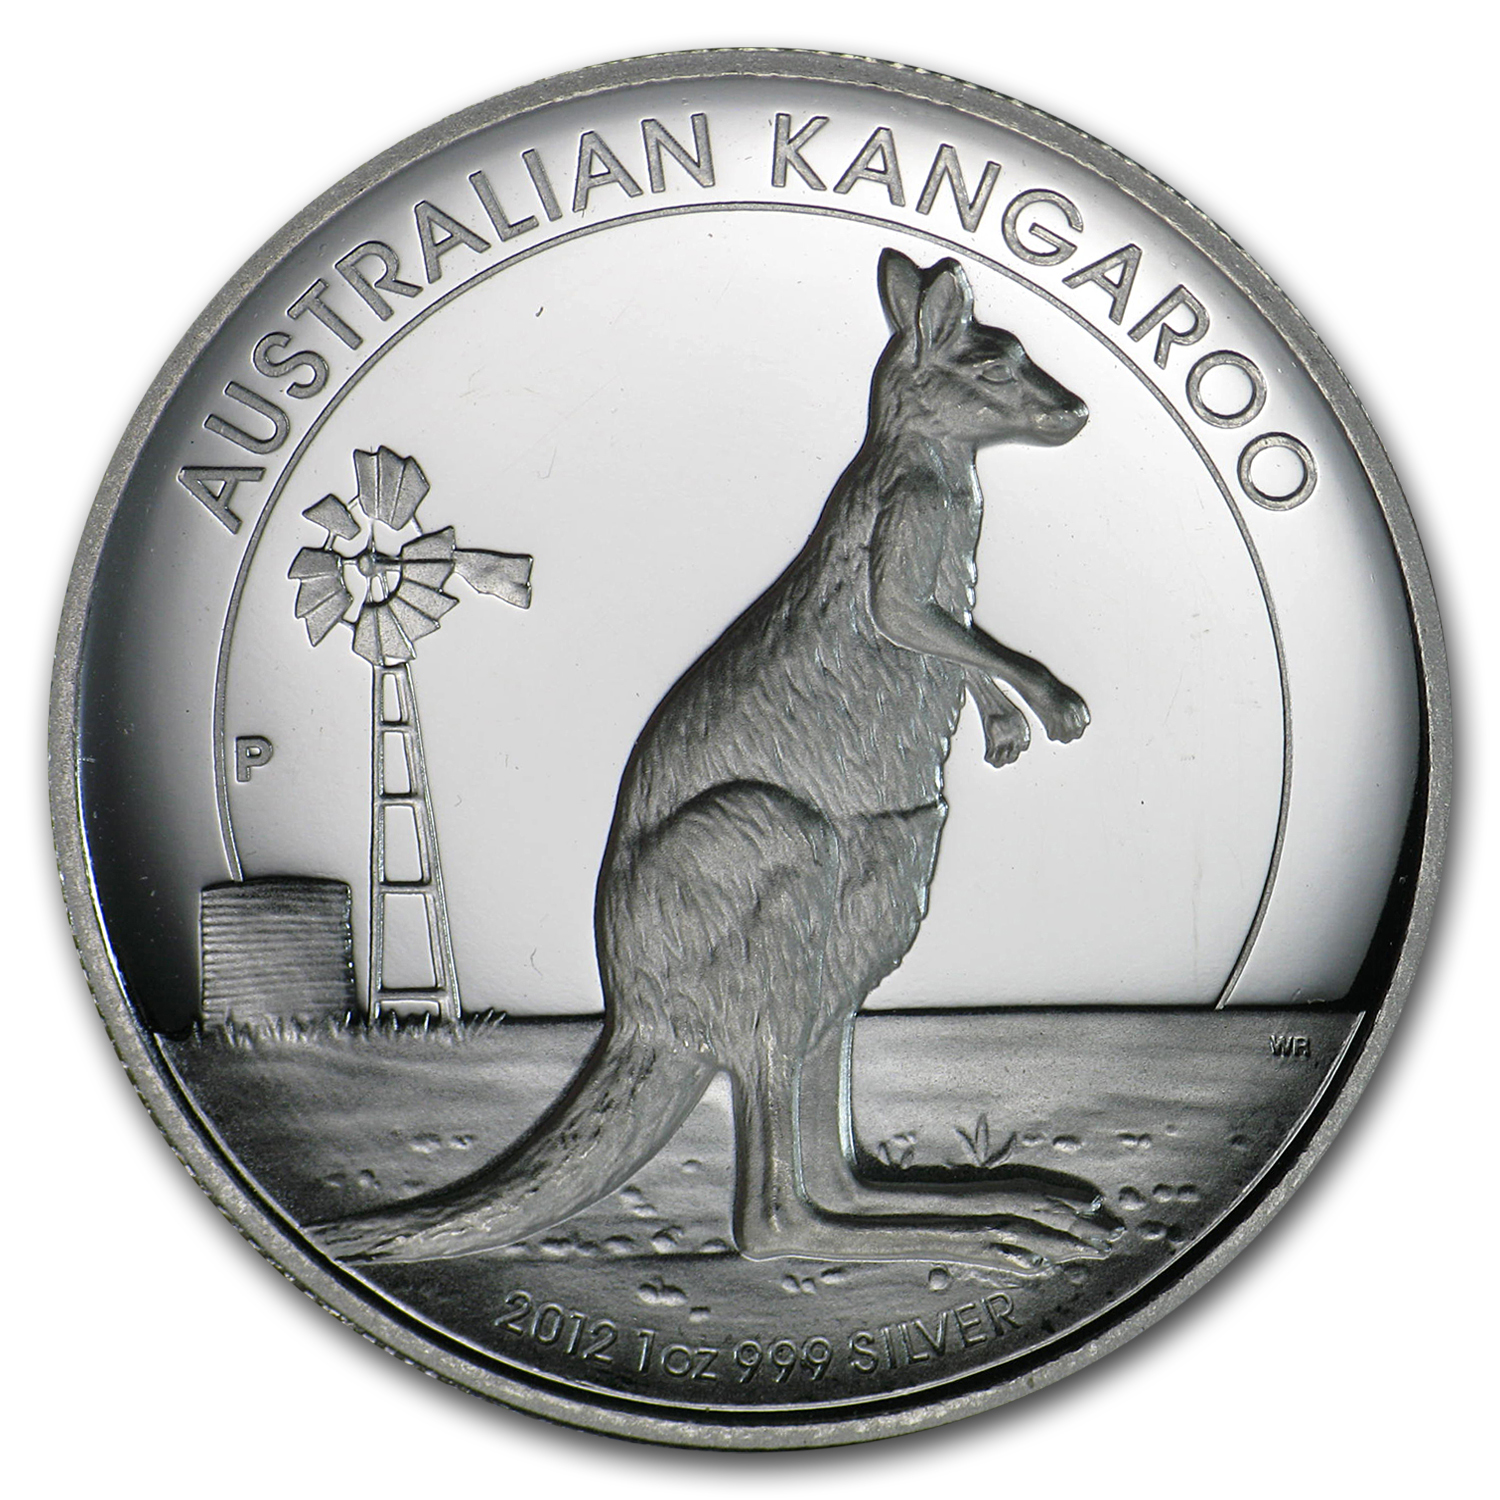 2012 Australia 1 oz Proof Silver High Relief Kangaroo (Abrasions)